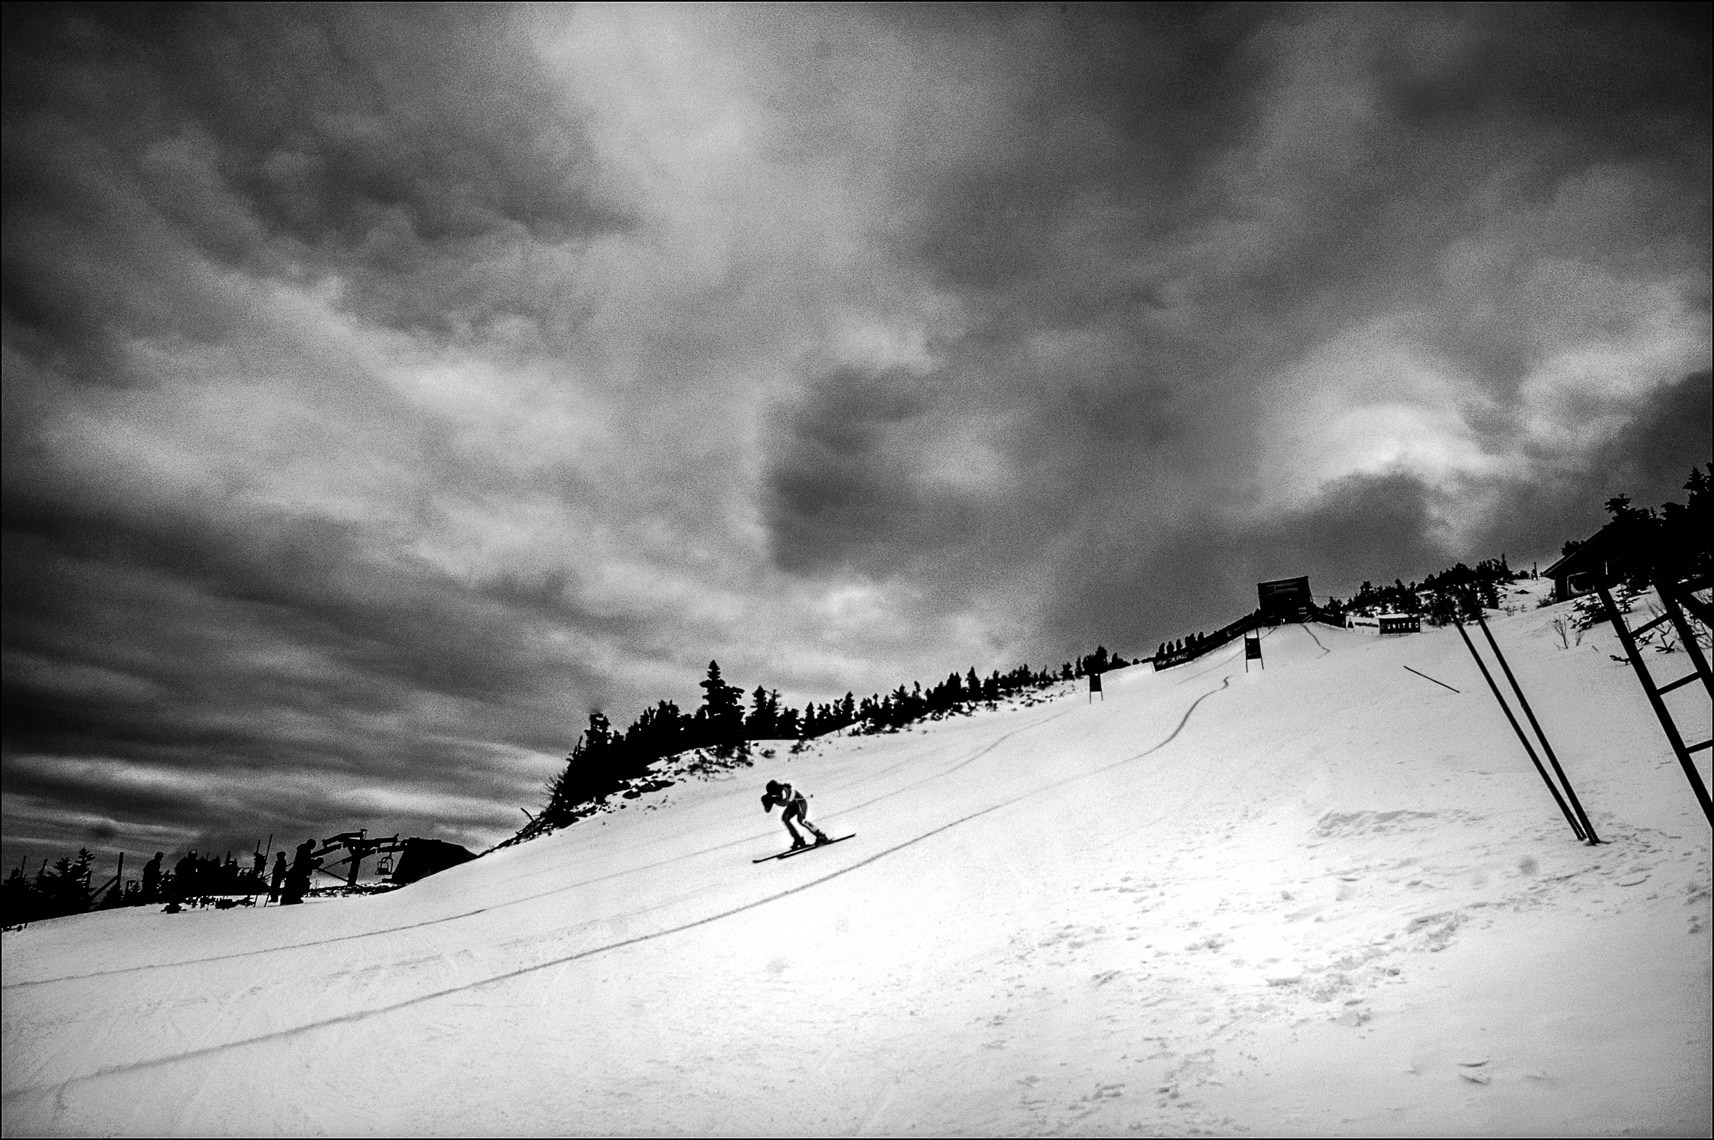 Downhill Ski Racing | Sugarloaf, ME